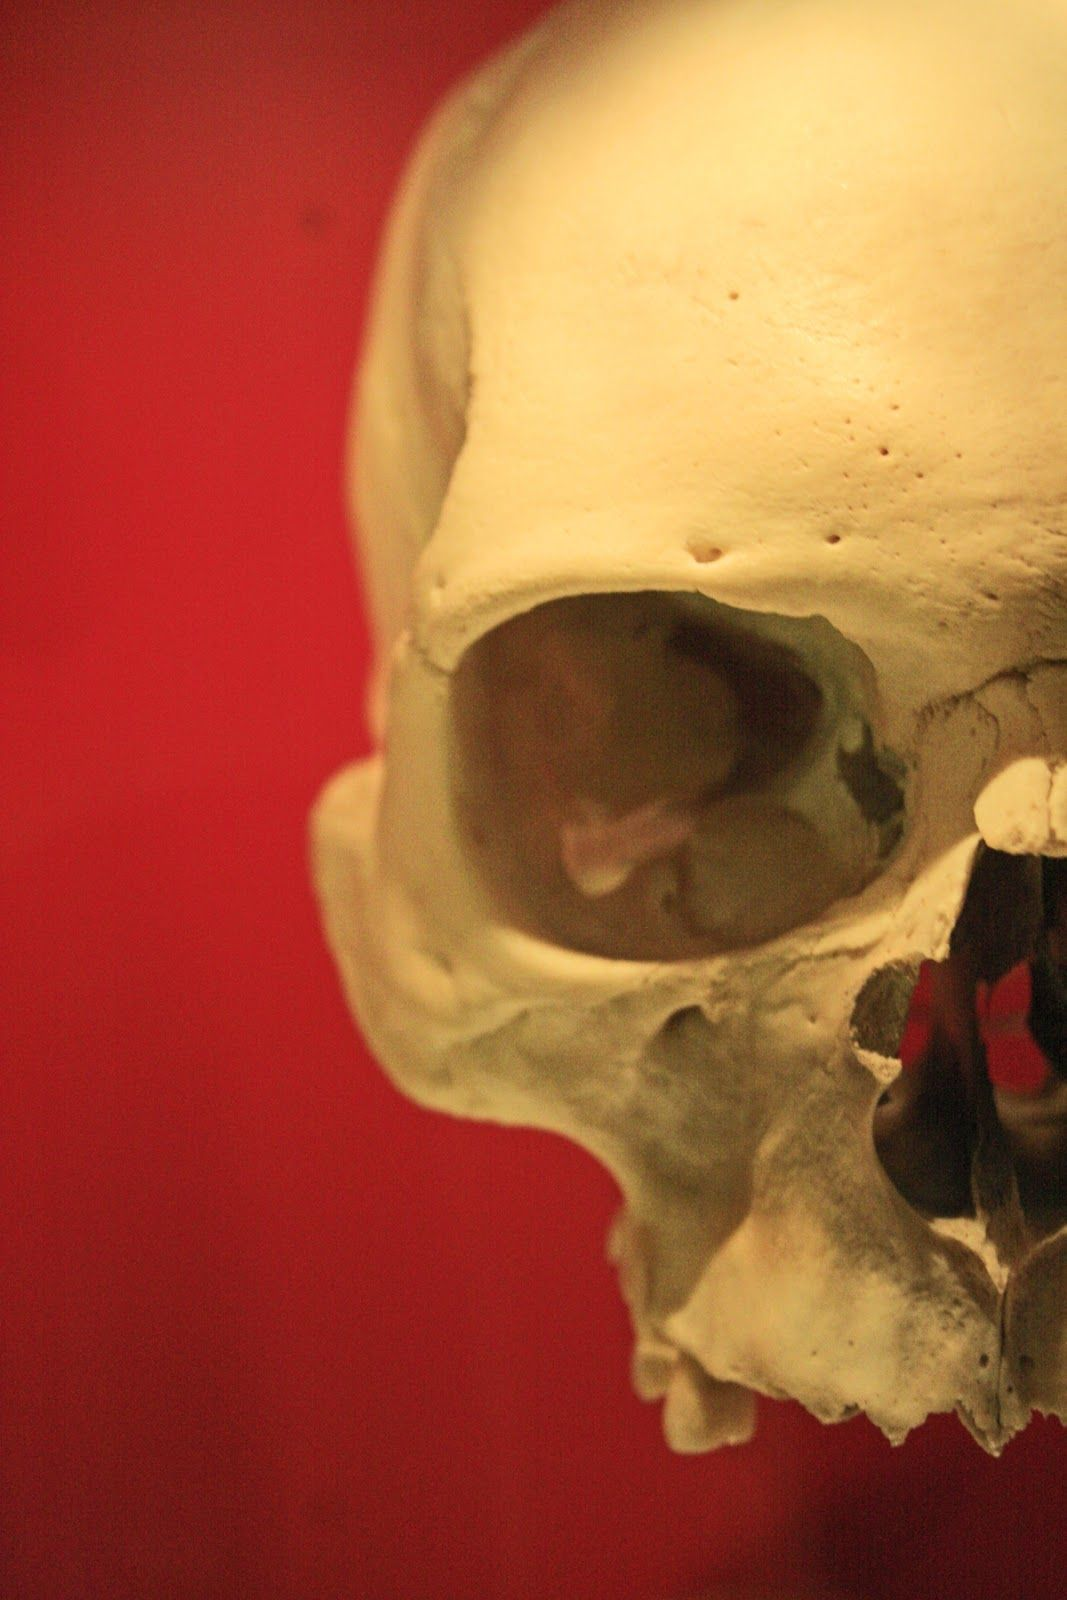 Blog - The Bone Collector - The (legal) business of buying and selling human bones on the internet